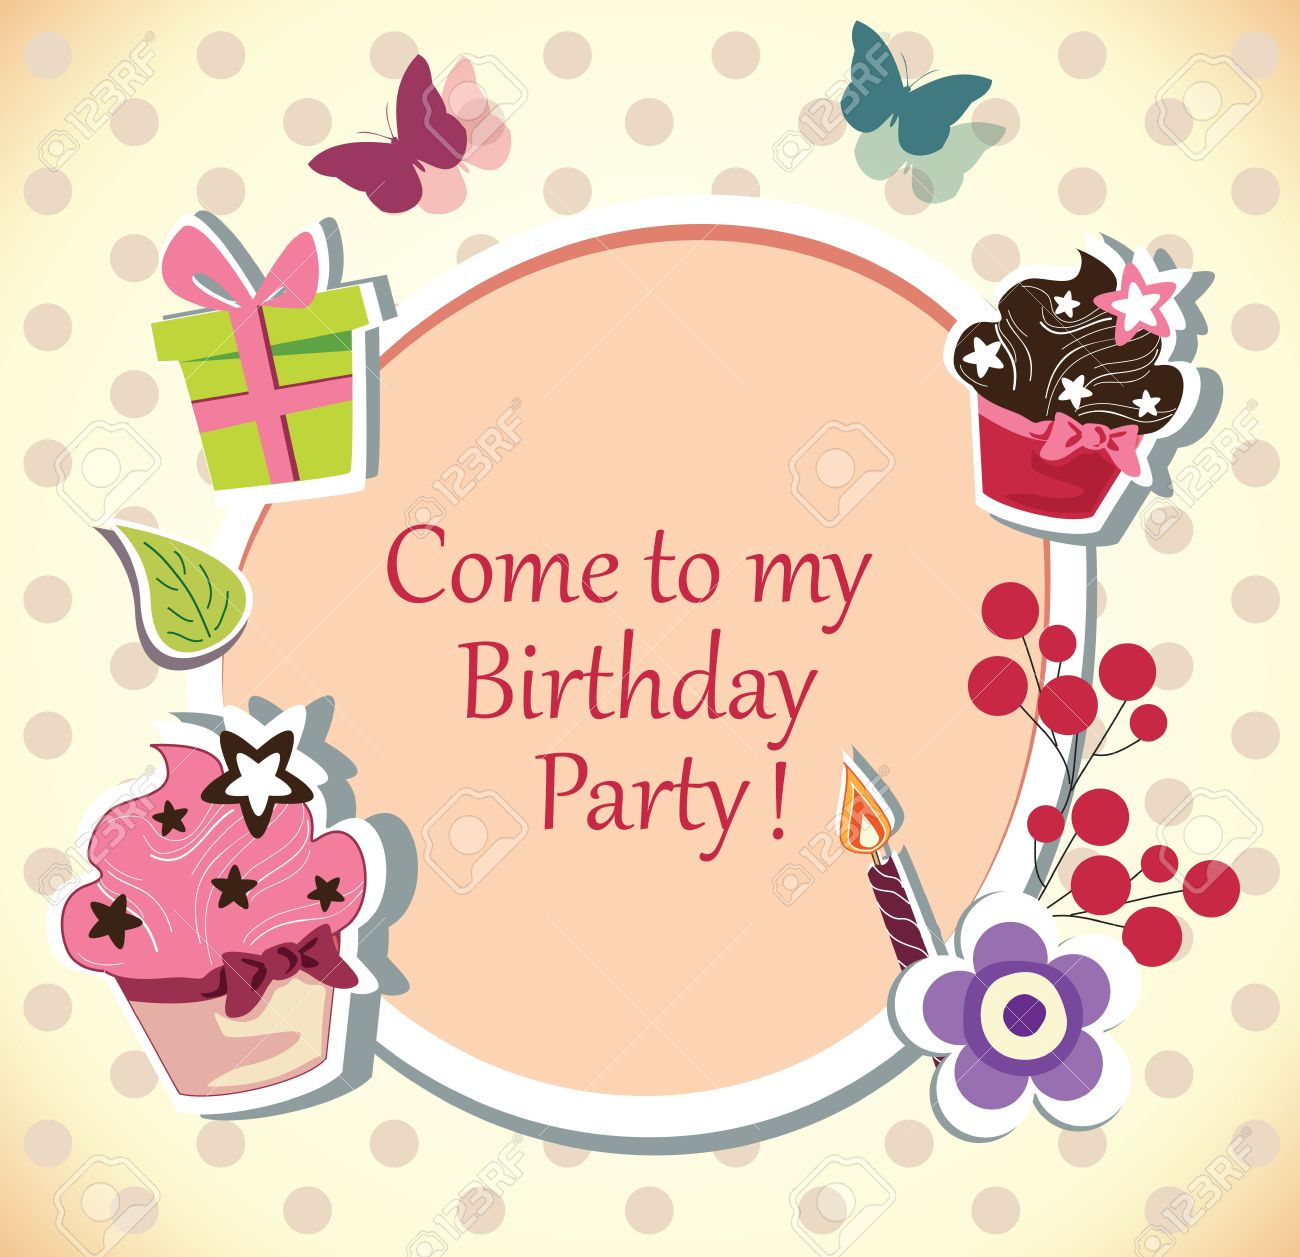 Birthday party invitation card royalty free cliparts vectors and birthday party invitation card stopboris Image collections